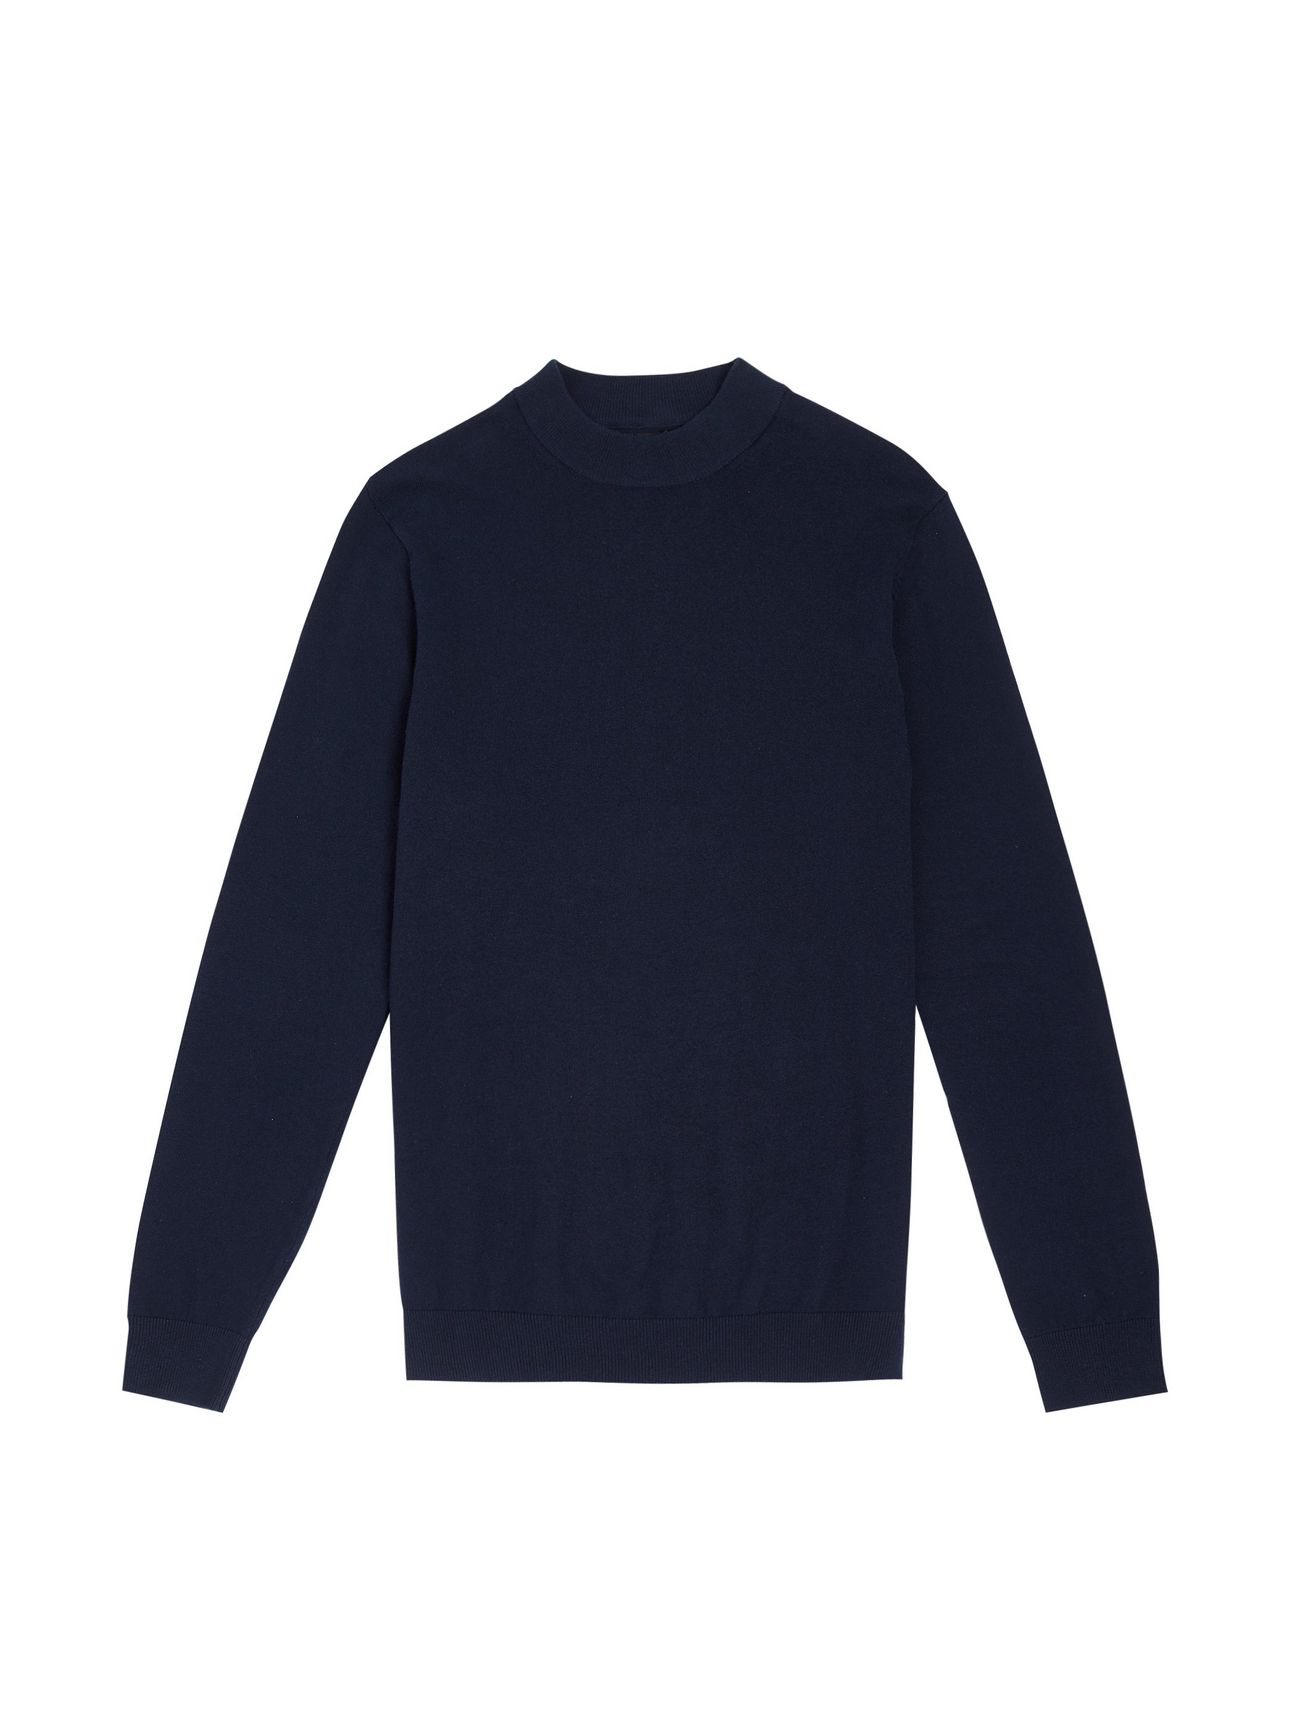 Navy Turtle Neck Jumper, £20.00 from Burton